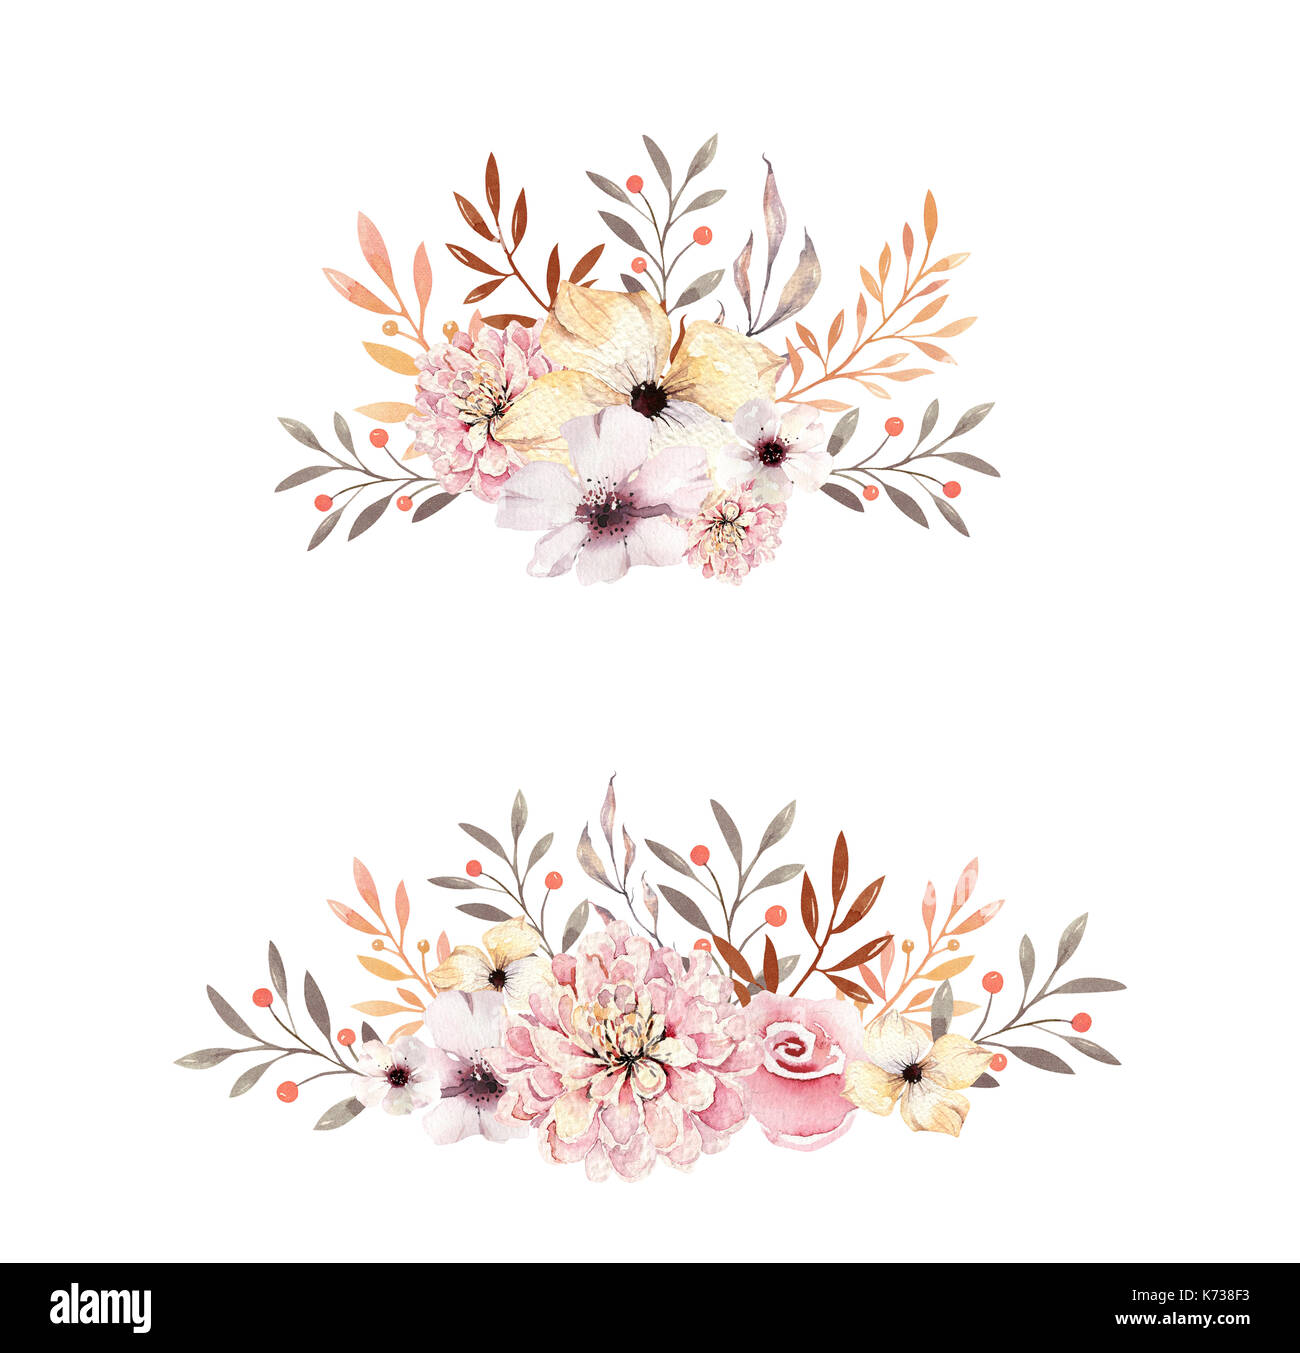 Falling Leaves In Water Live Wallpaper Set Of Watercolor Boho Floral Bouquets Watercolour